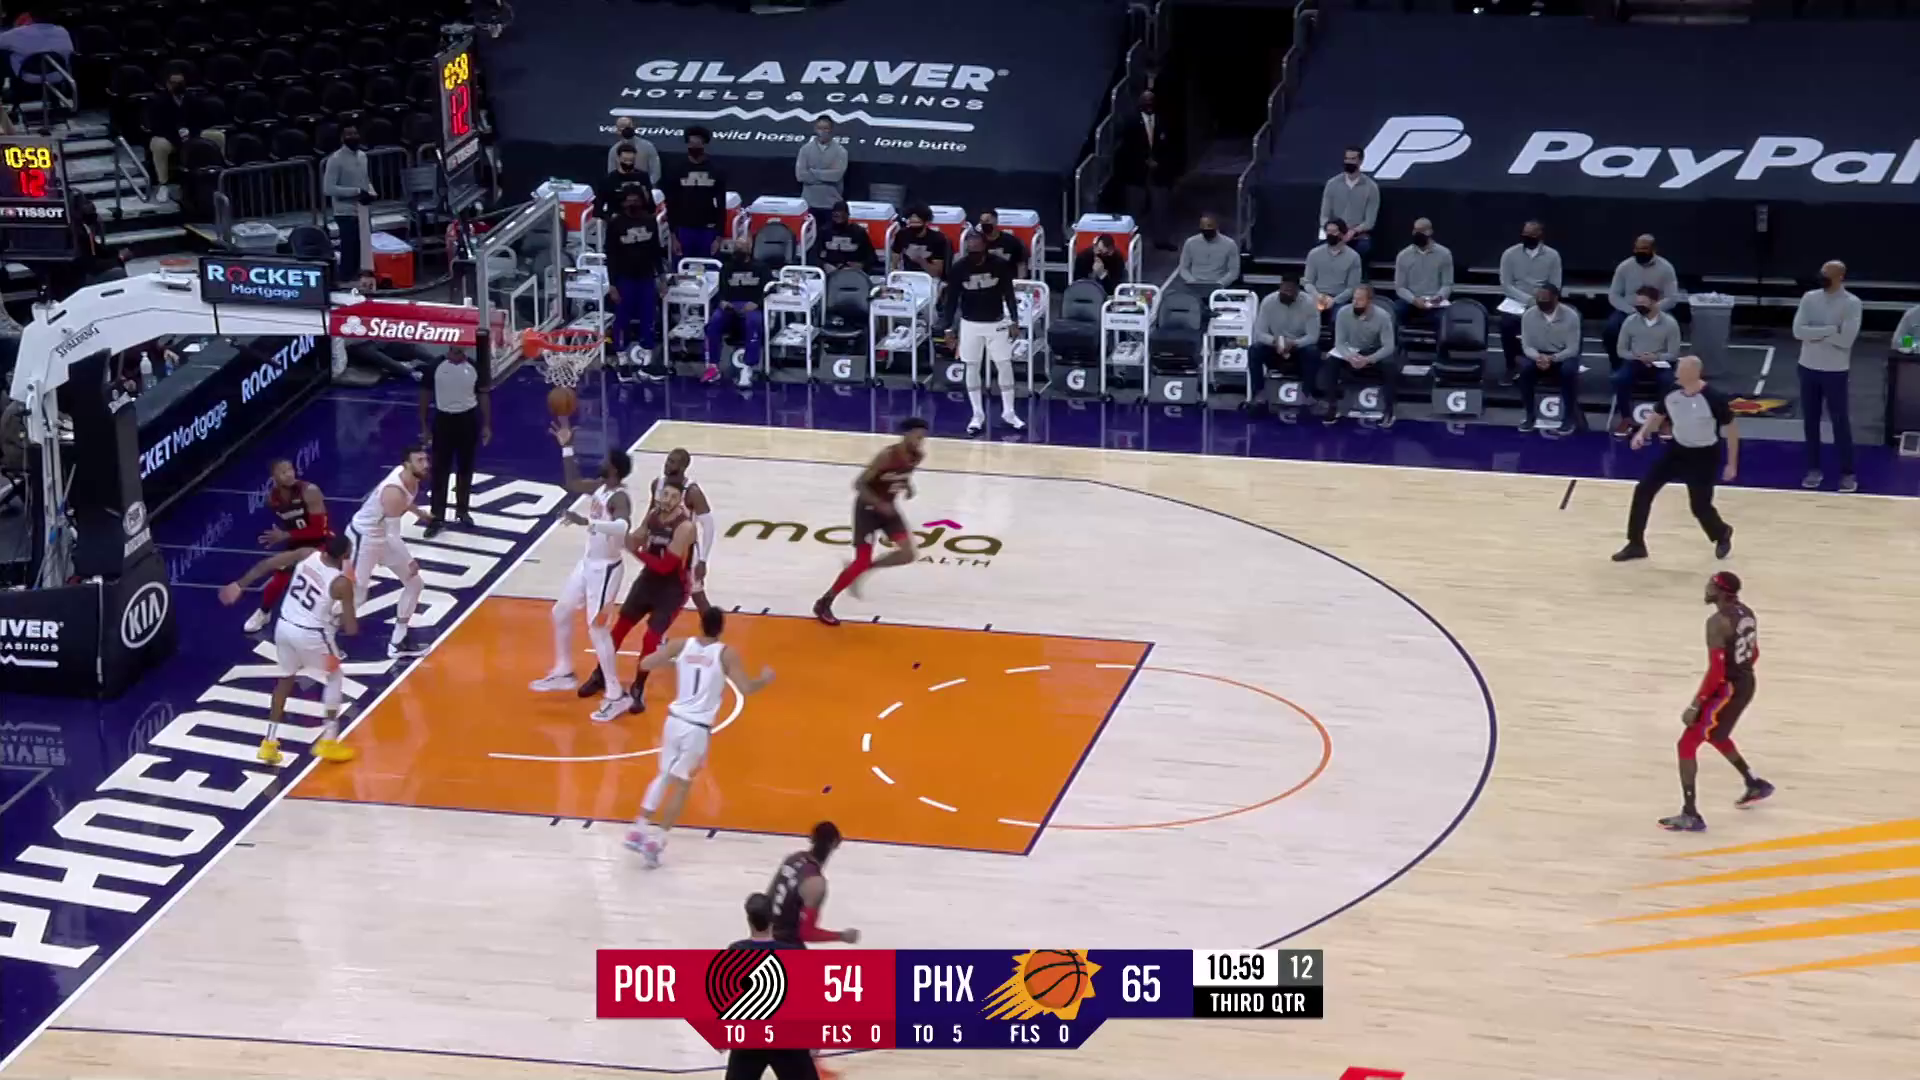 Trail Blazers 100, Suns 132 | Game Highlights by McDelivery